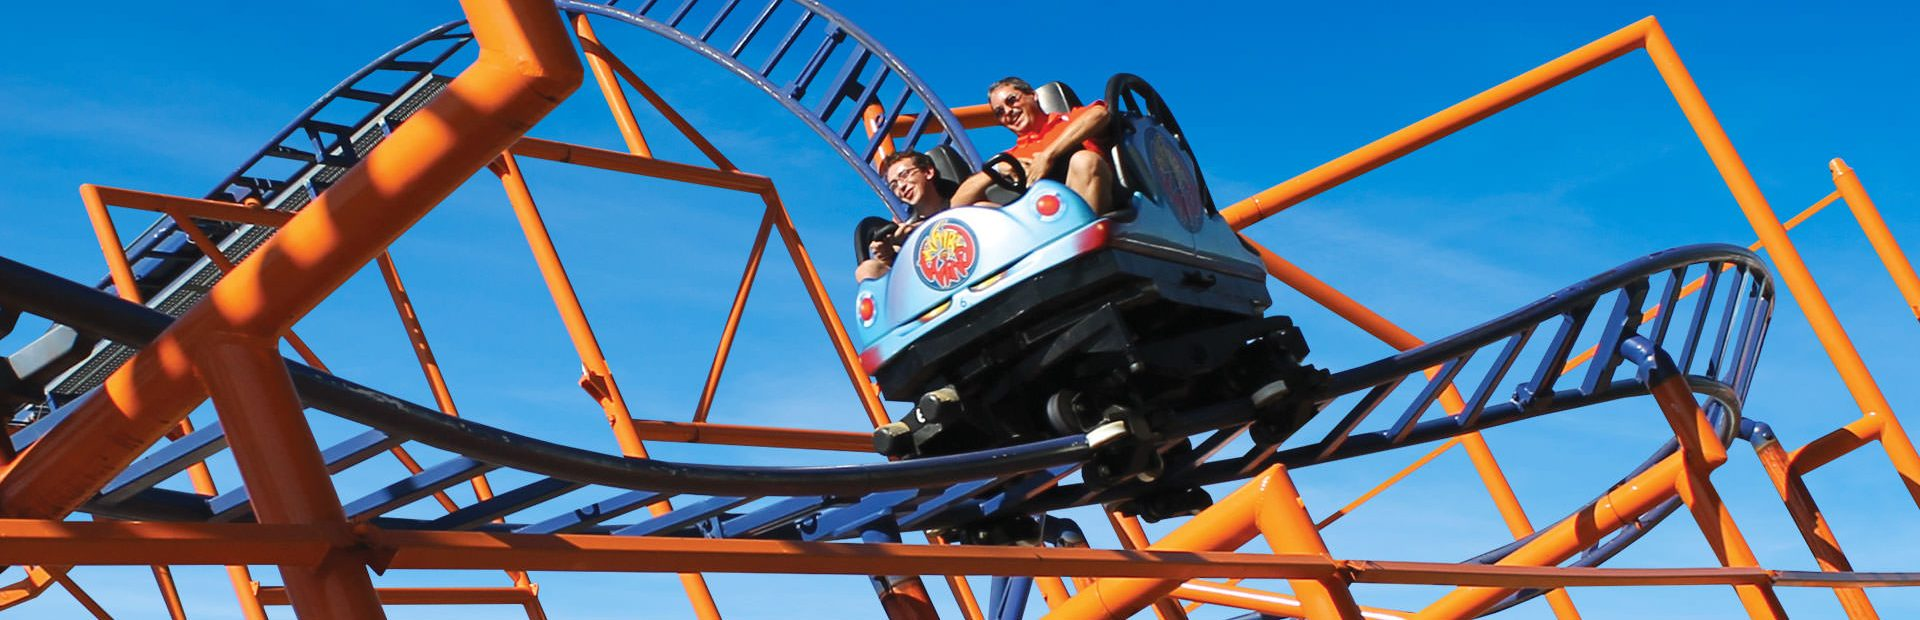 a visit to the amusement park Plan to visit lagoon amusement park, united states get details of location, timings and contact find the reviews and ratings to know better.